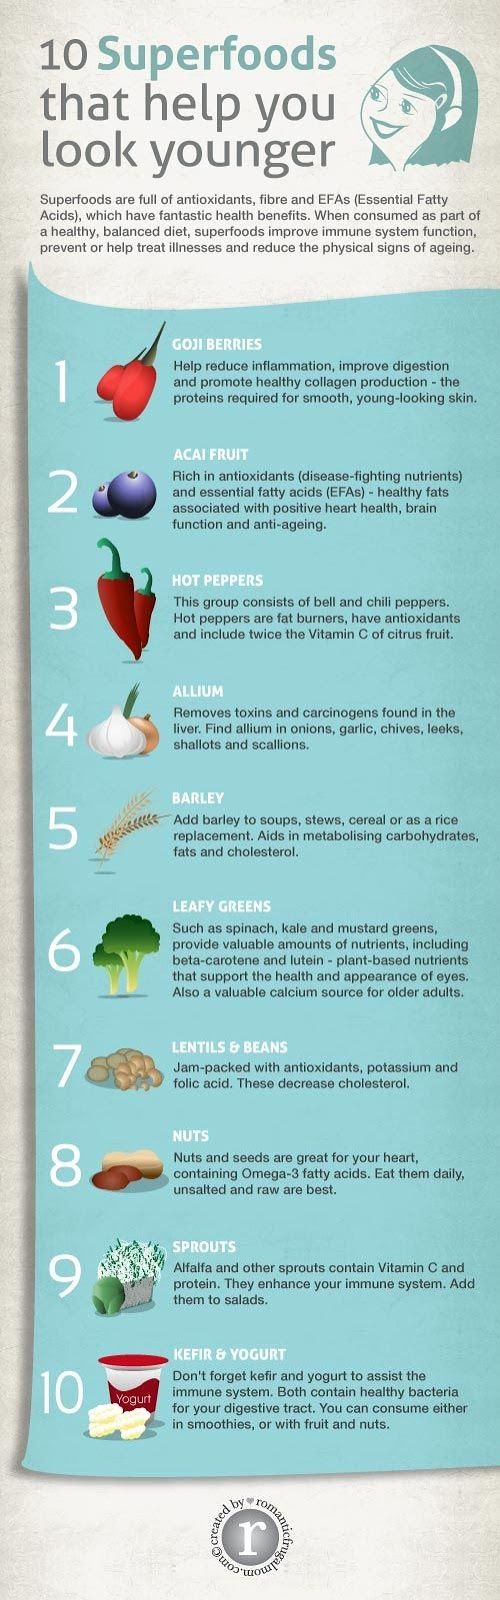 10 SuperFoods that Help You Look Younger #Health #Nutrition #Infographic